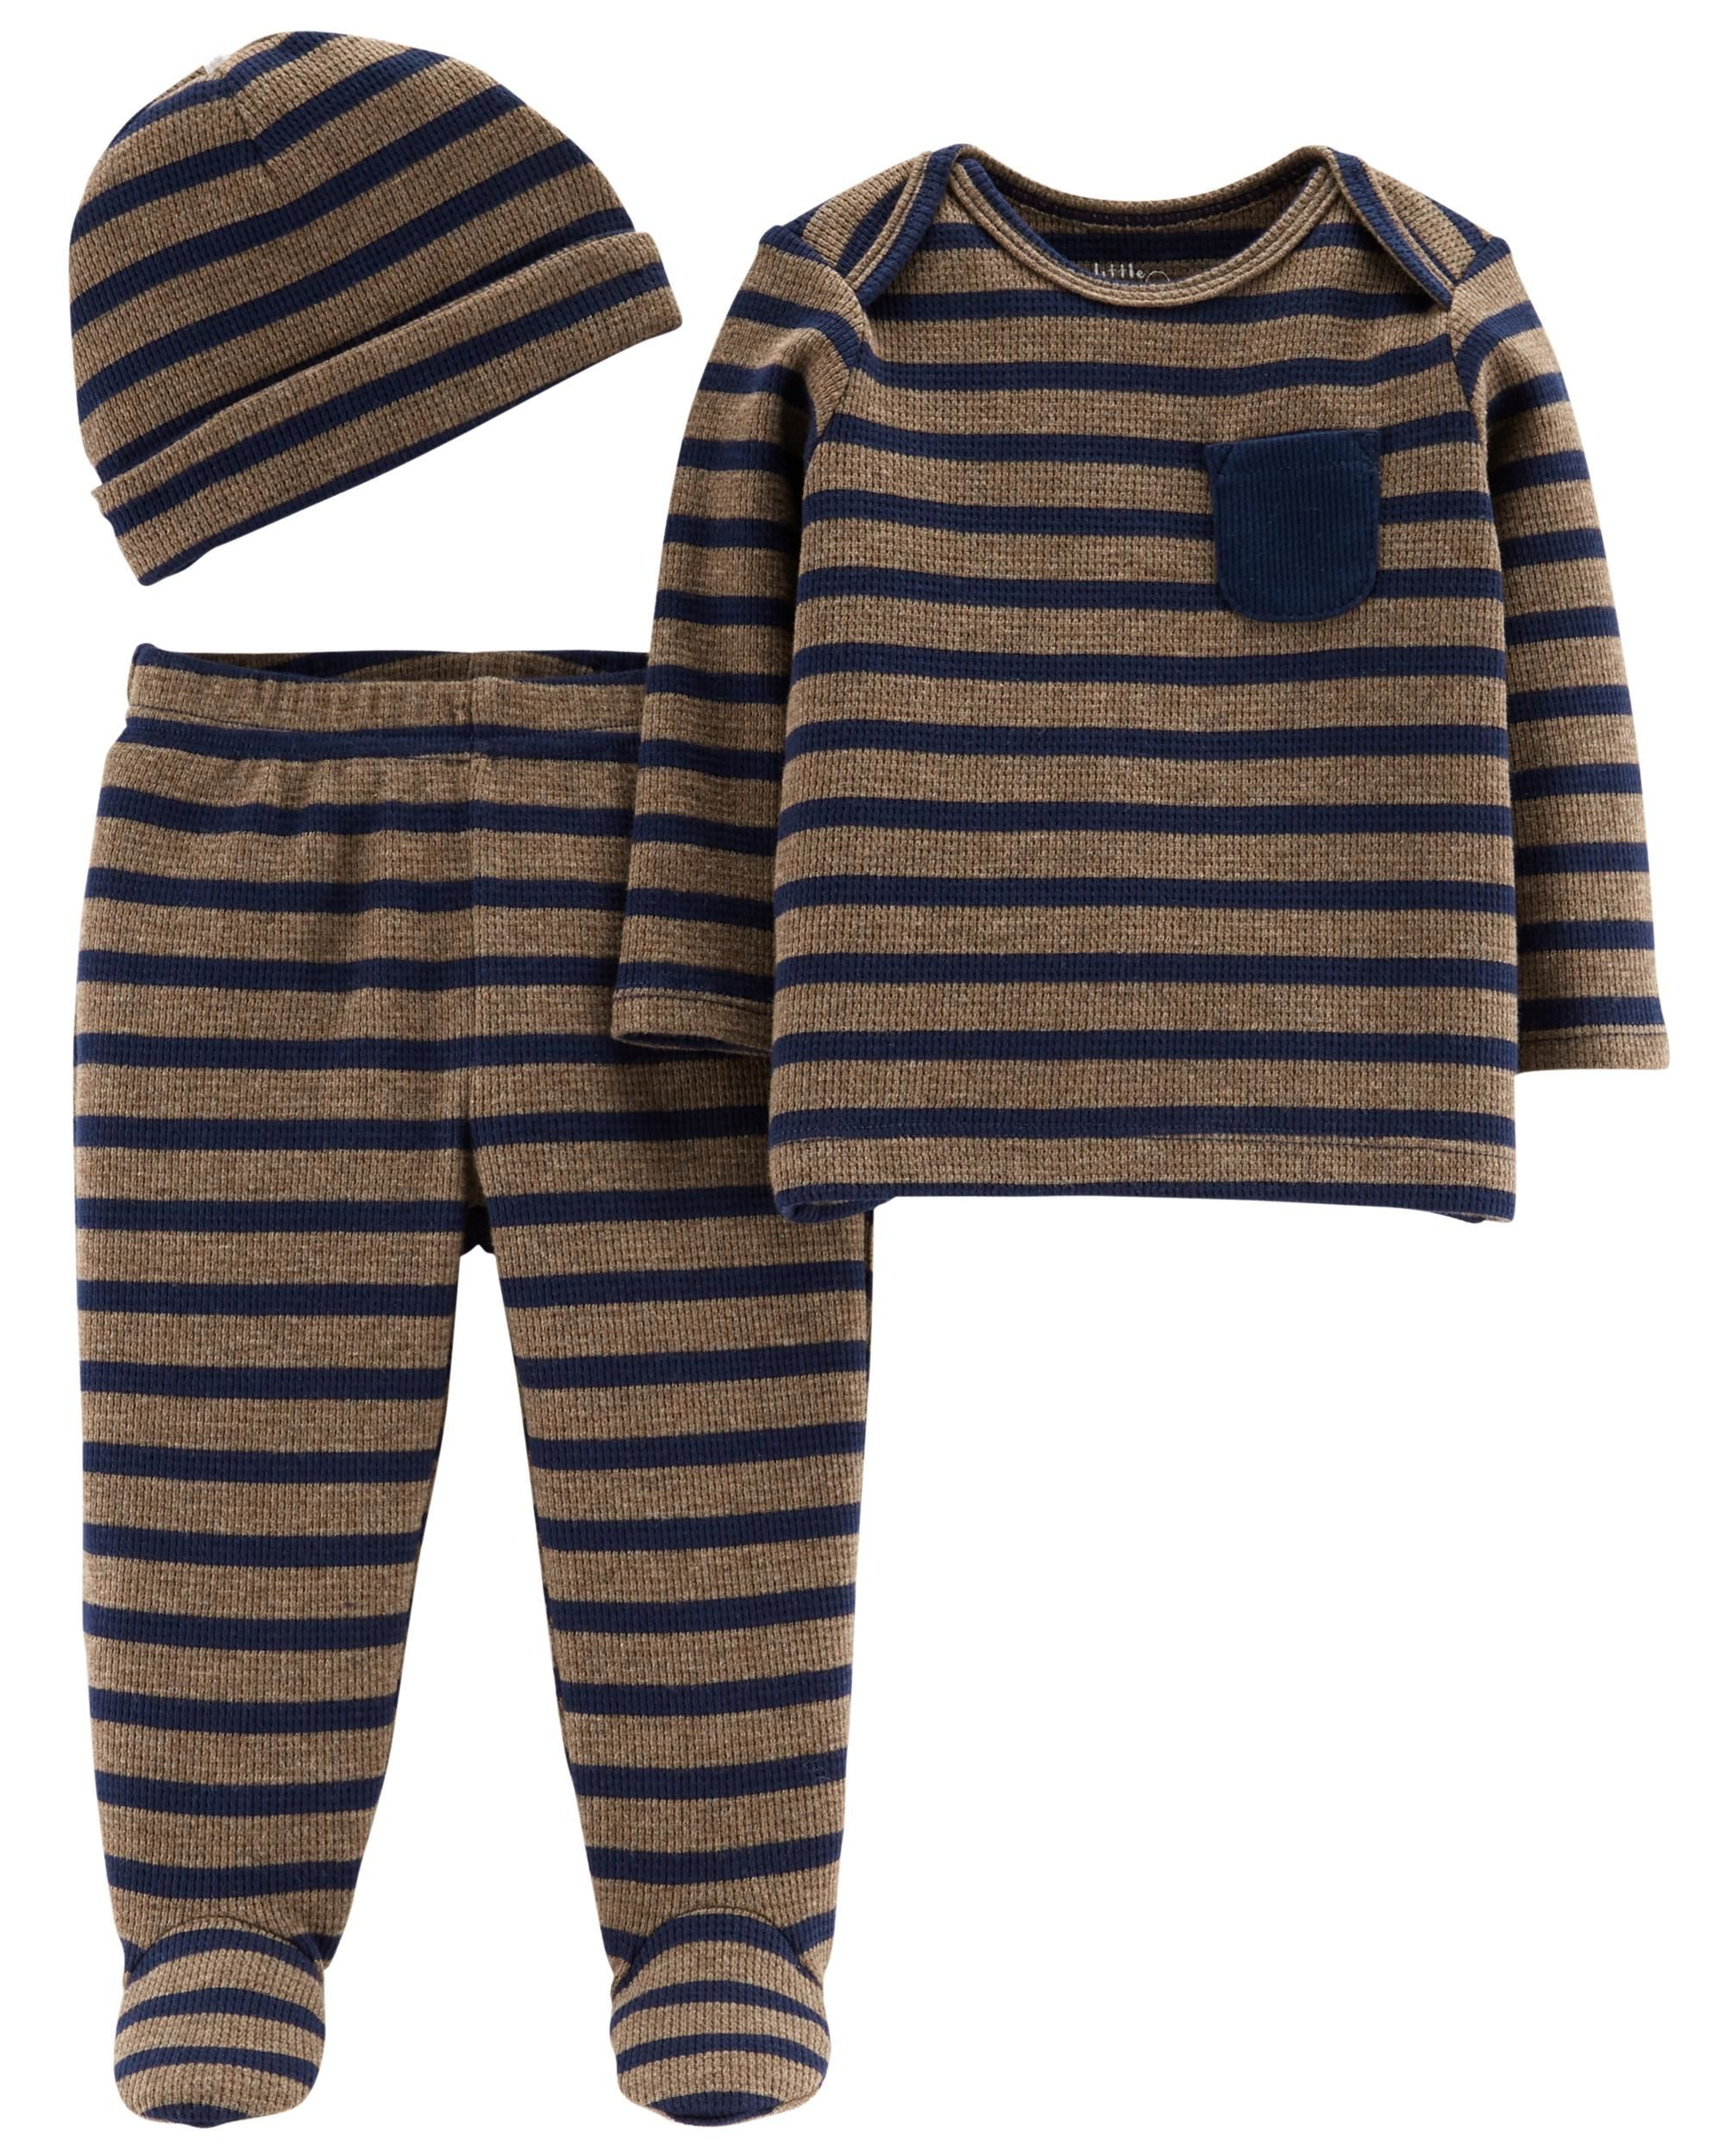 28774eb1d6cd Baby Boy 3-Piece Certified Organic Take-Me-Home Set